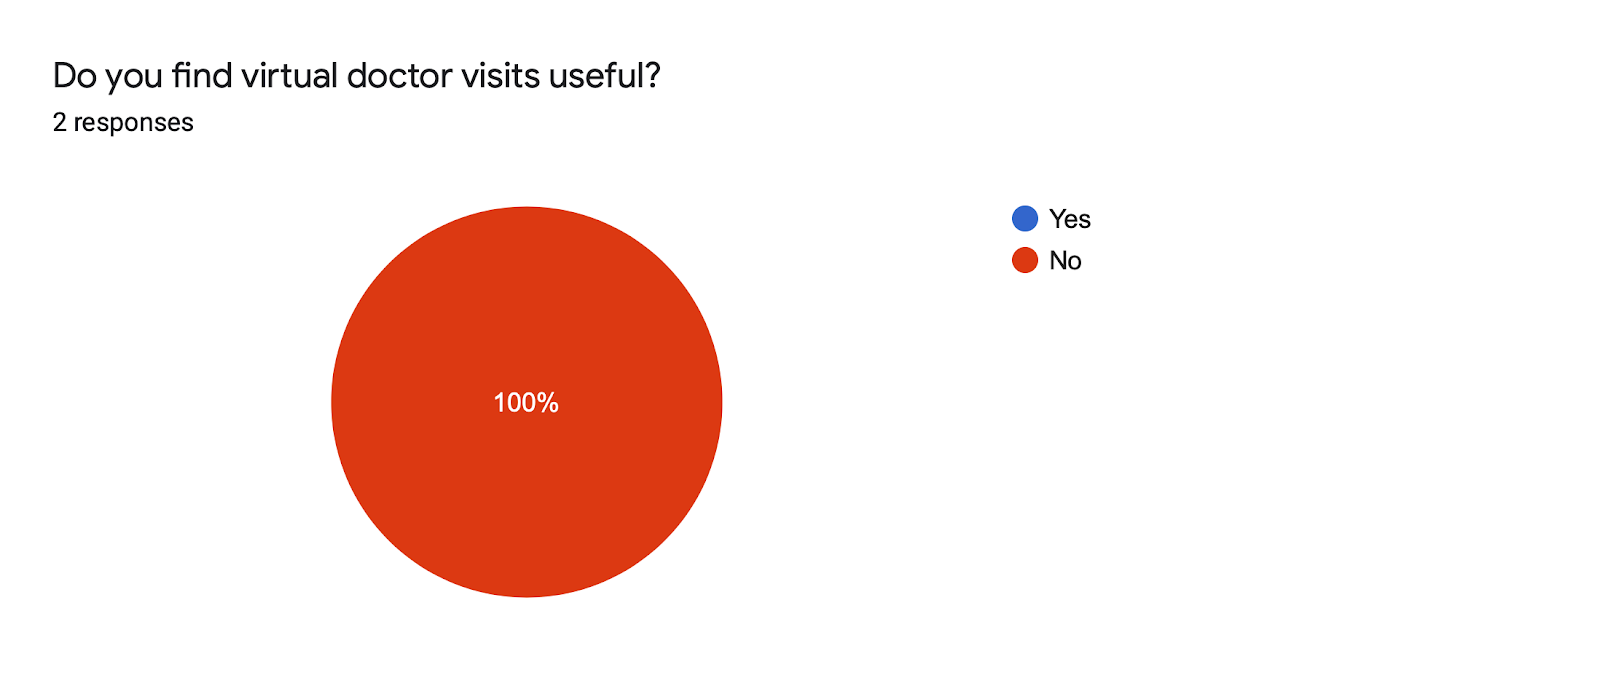 Forms response chart. Question title: Do you find virtual doctor visits useful?. Number of responses: 2 responses.